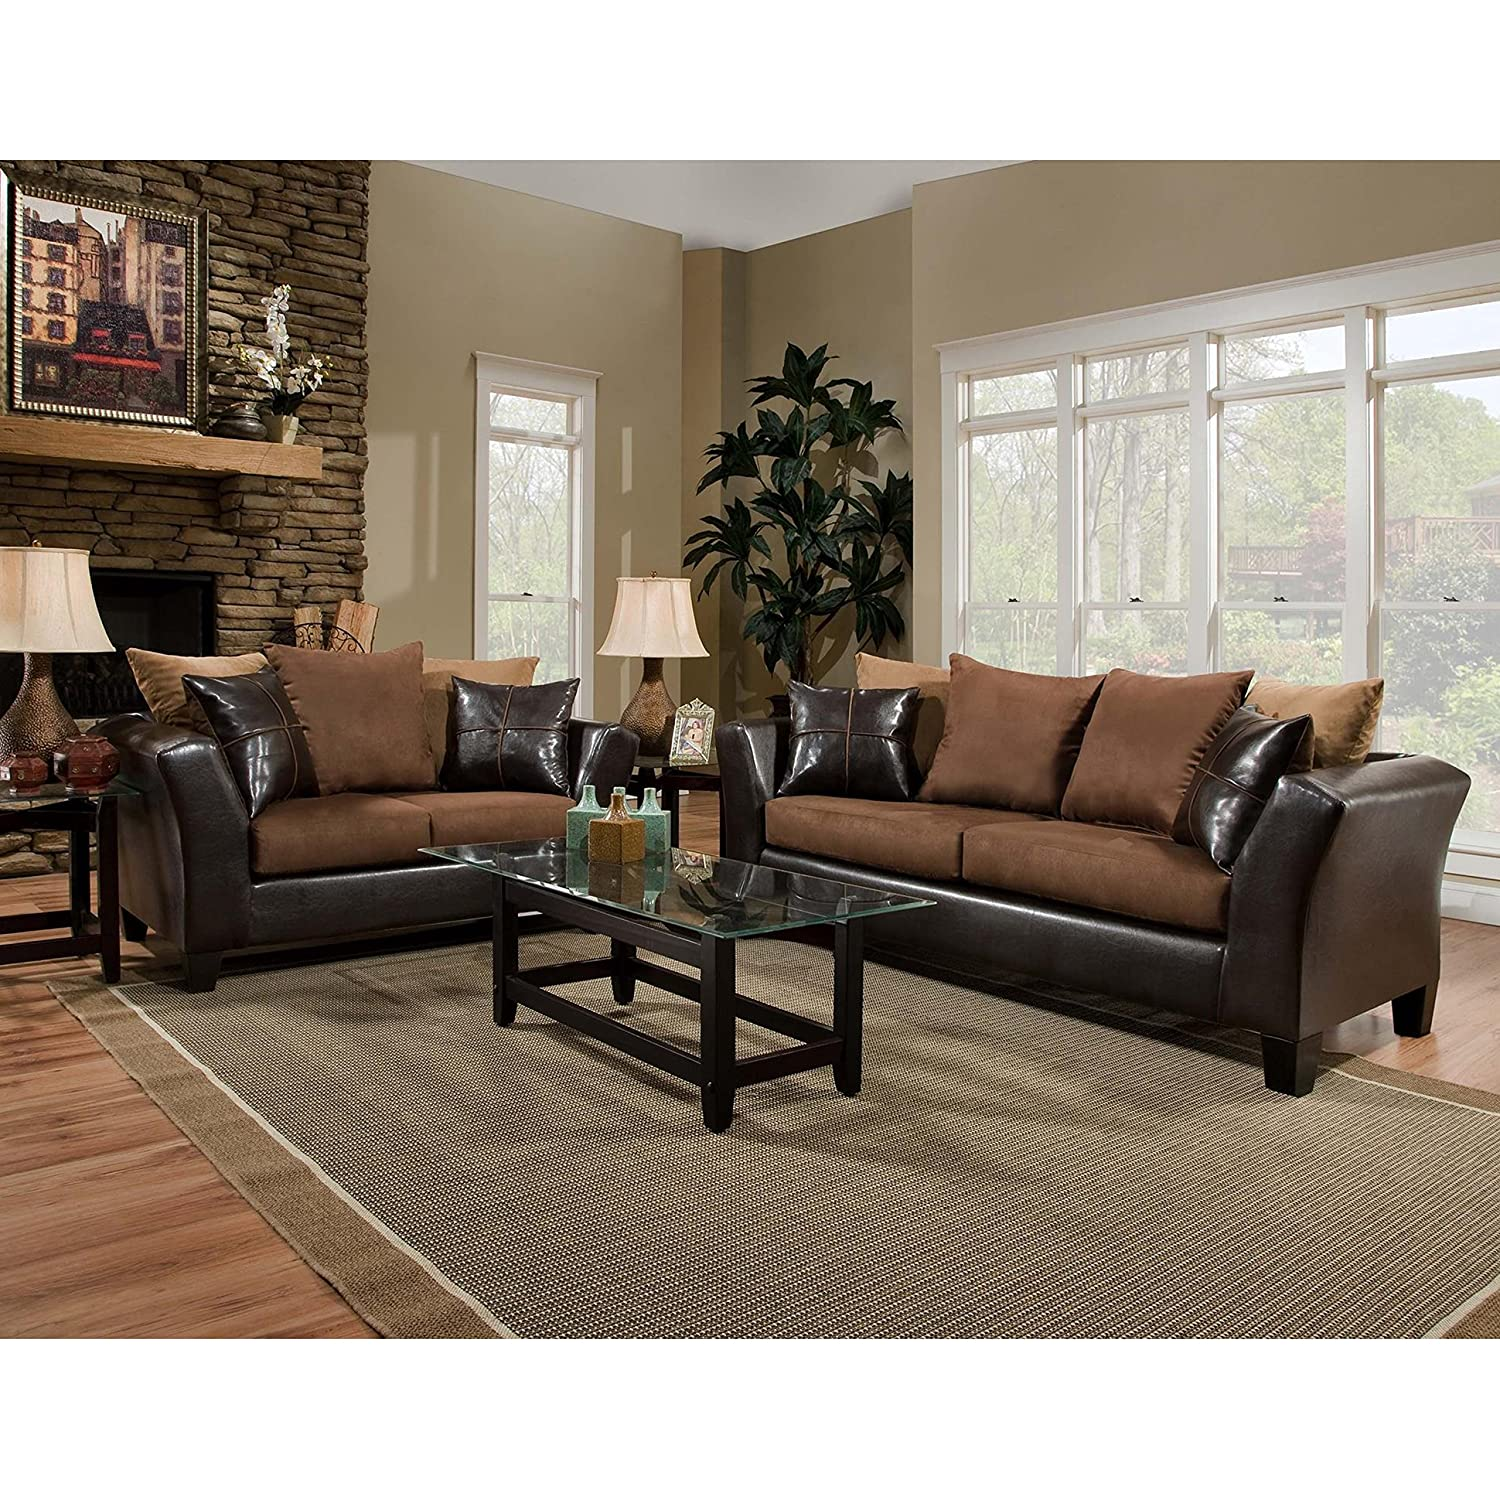 Amazon com flash furniture riverstone sierra chocolate microfiber living room set kitchen dining